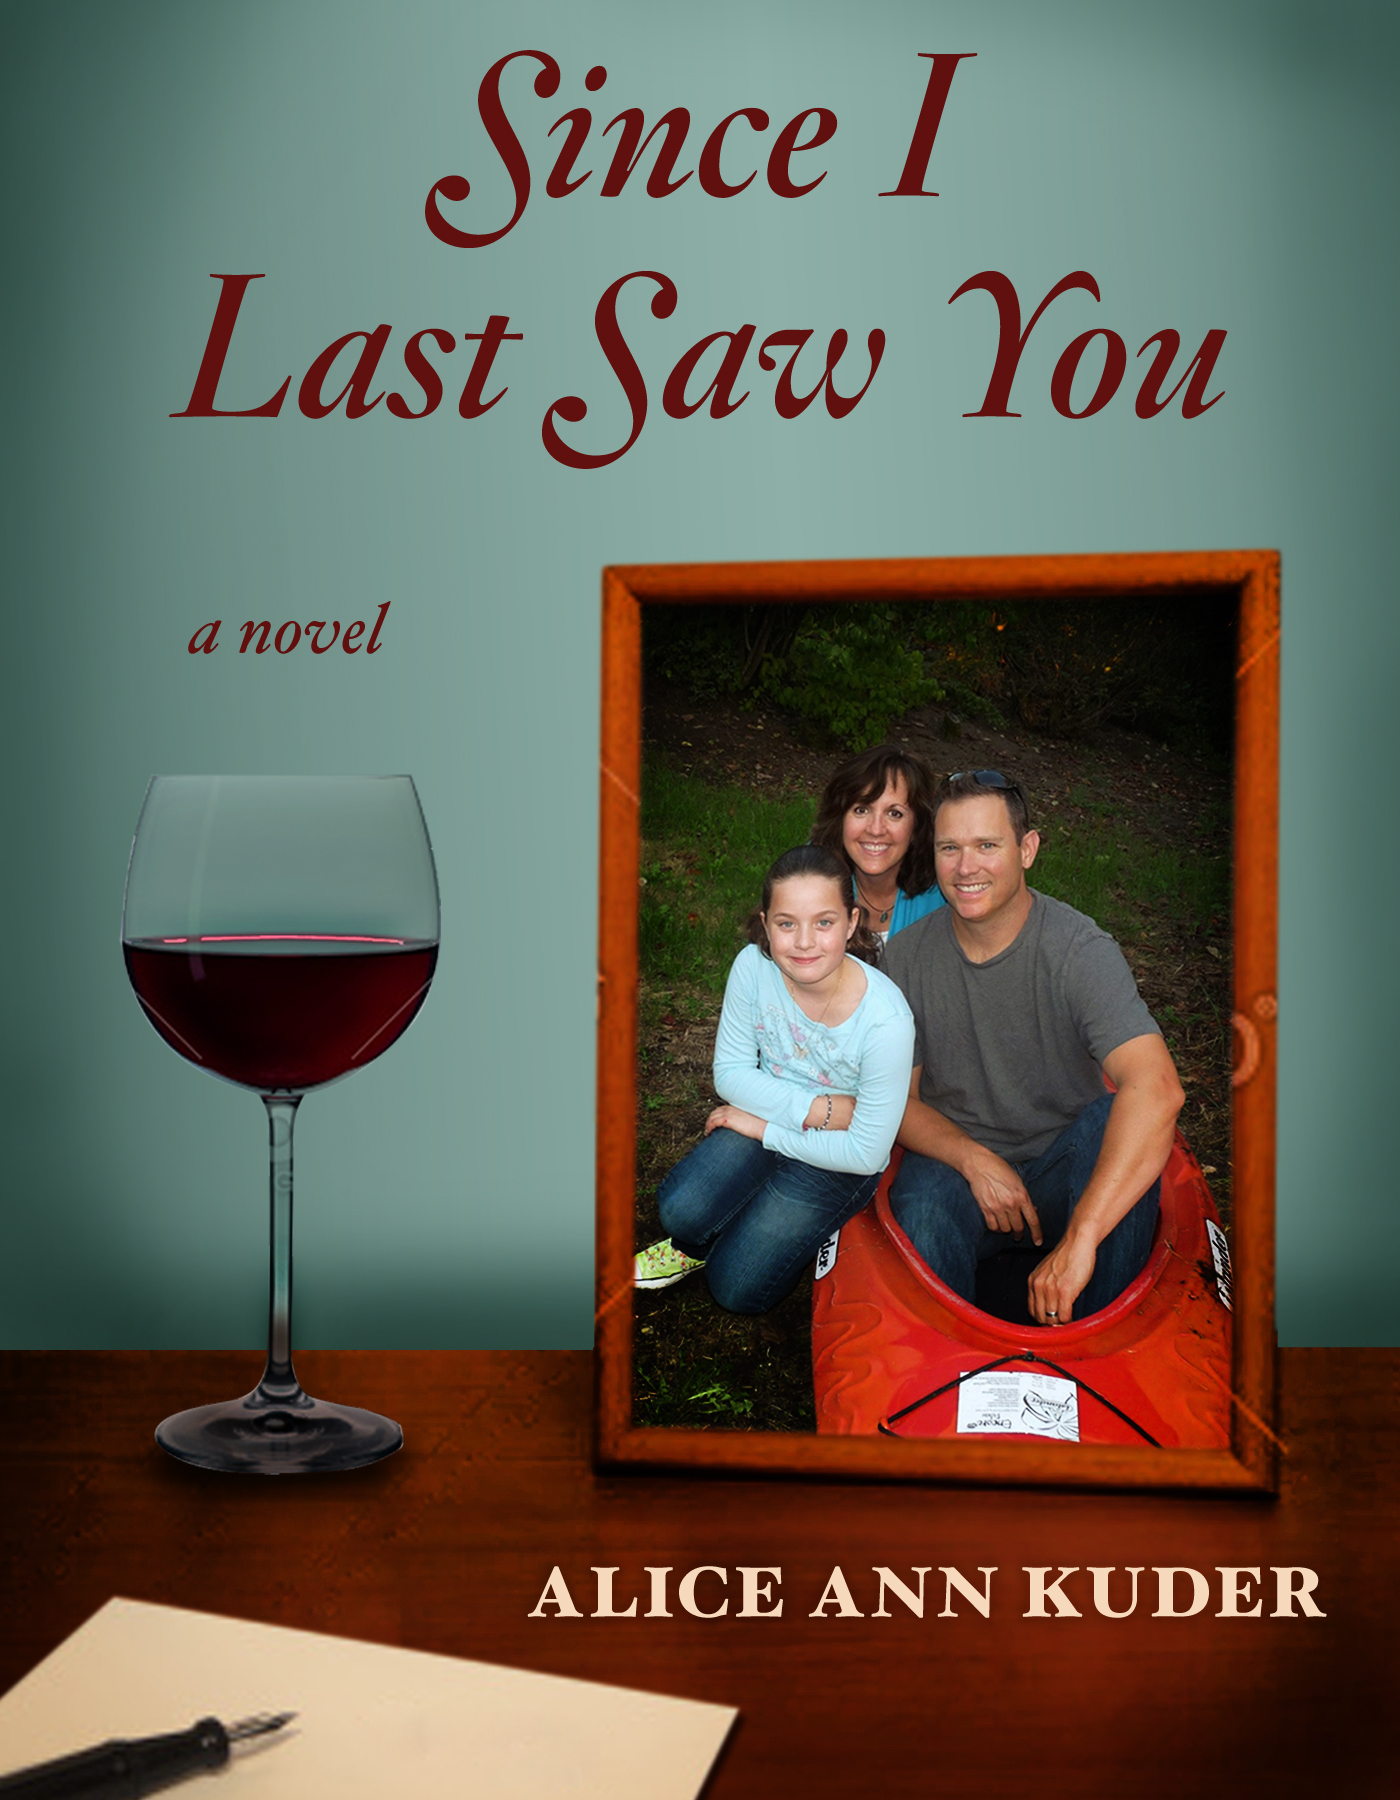 a novel by Alice Ann Kuder